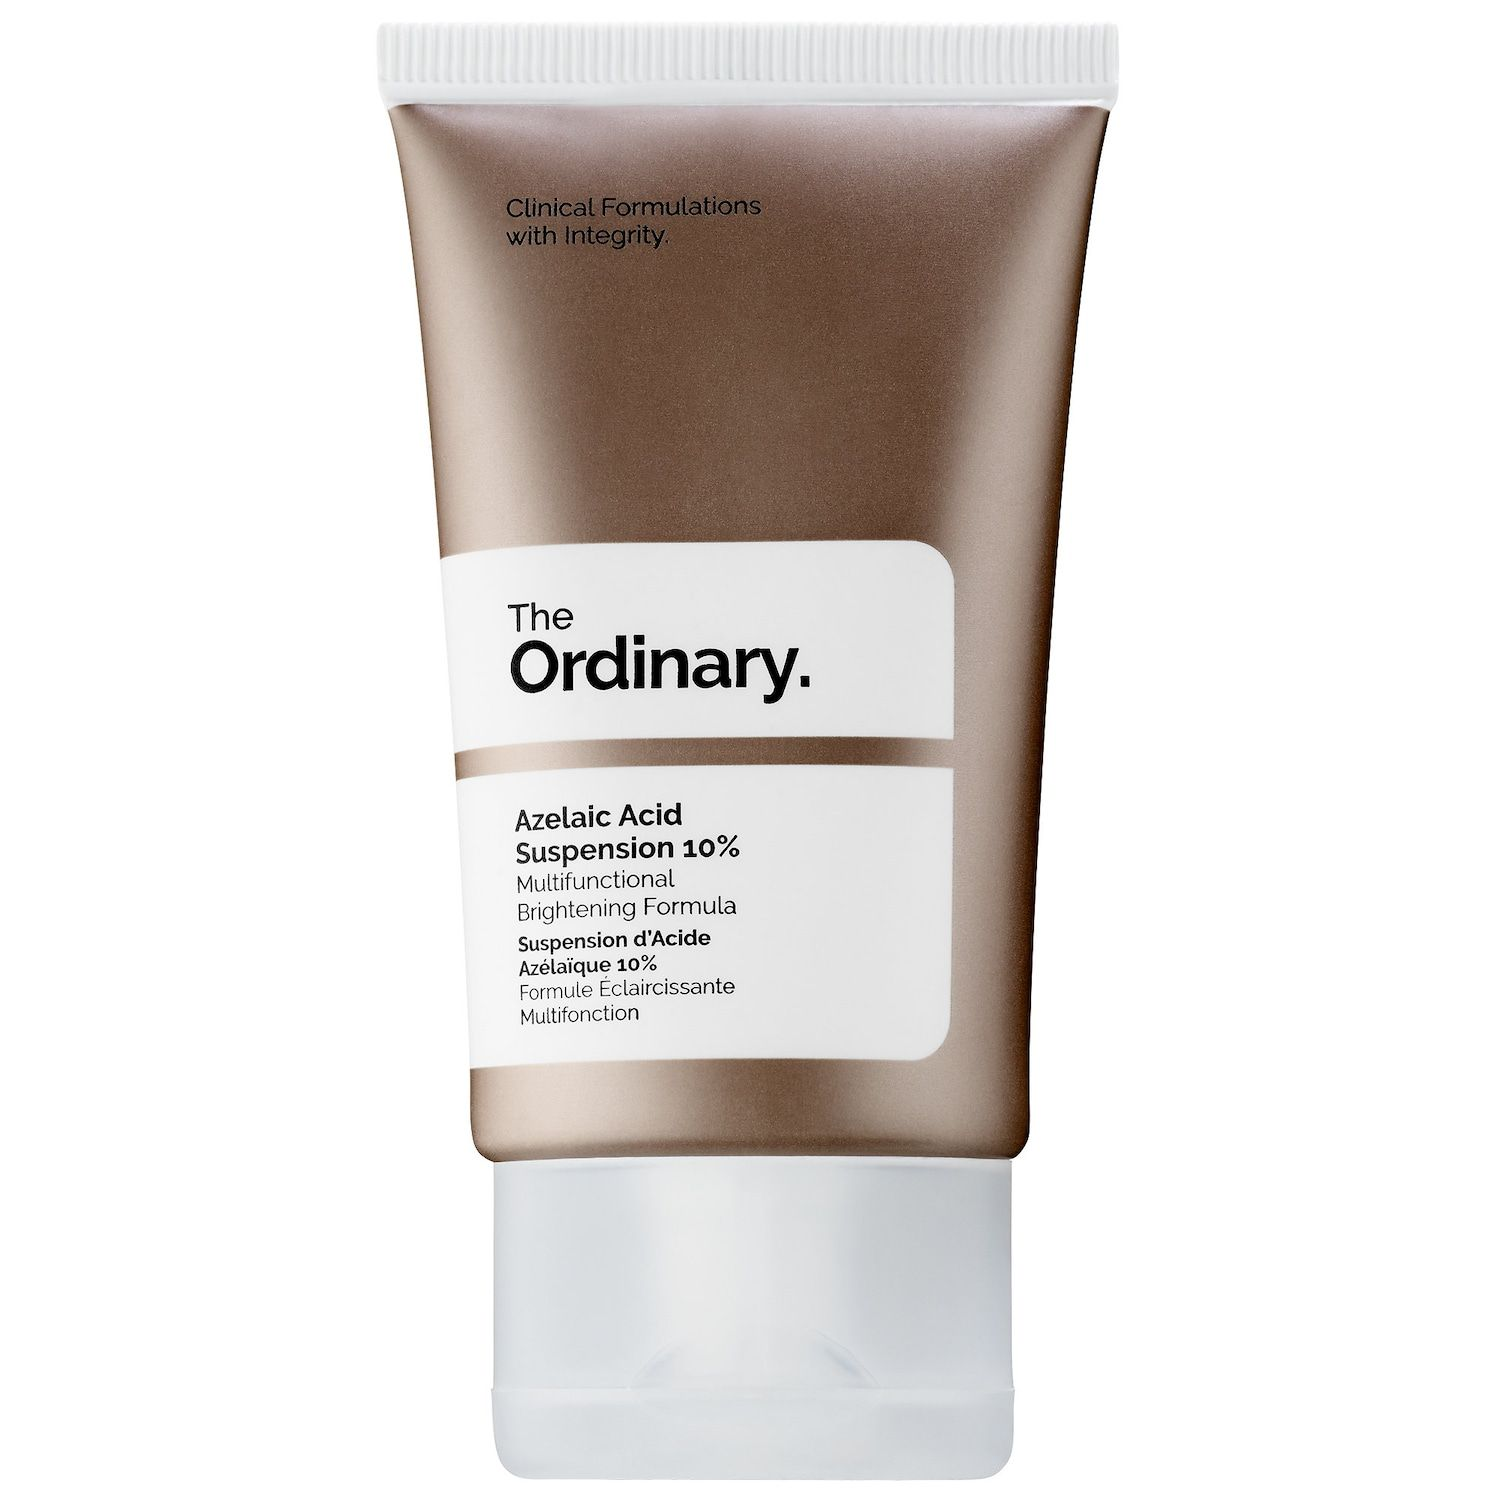 Pin On The Ordinary Skincare Line Inexpensive